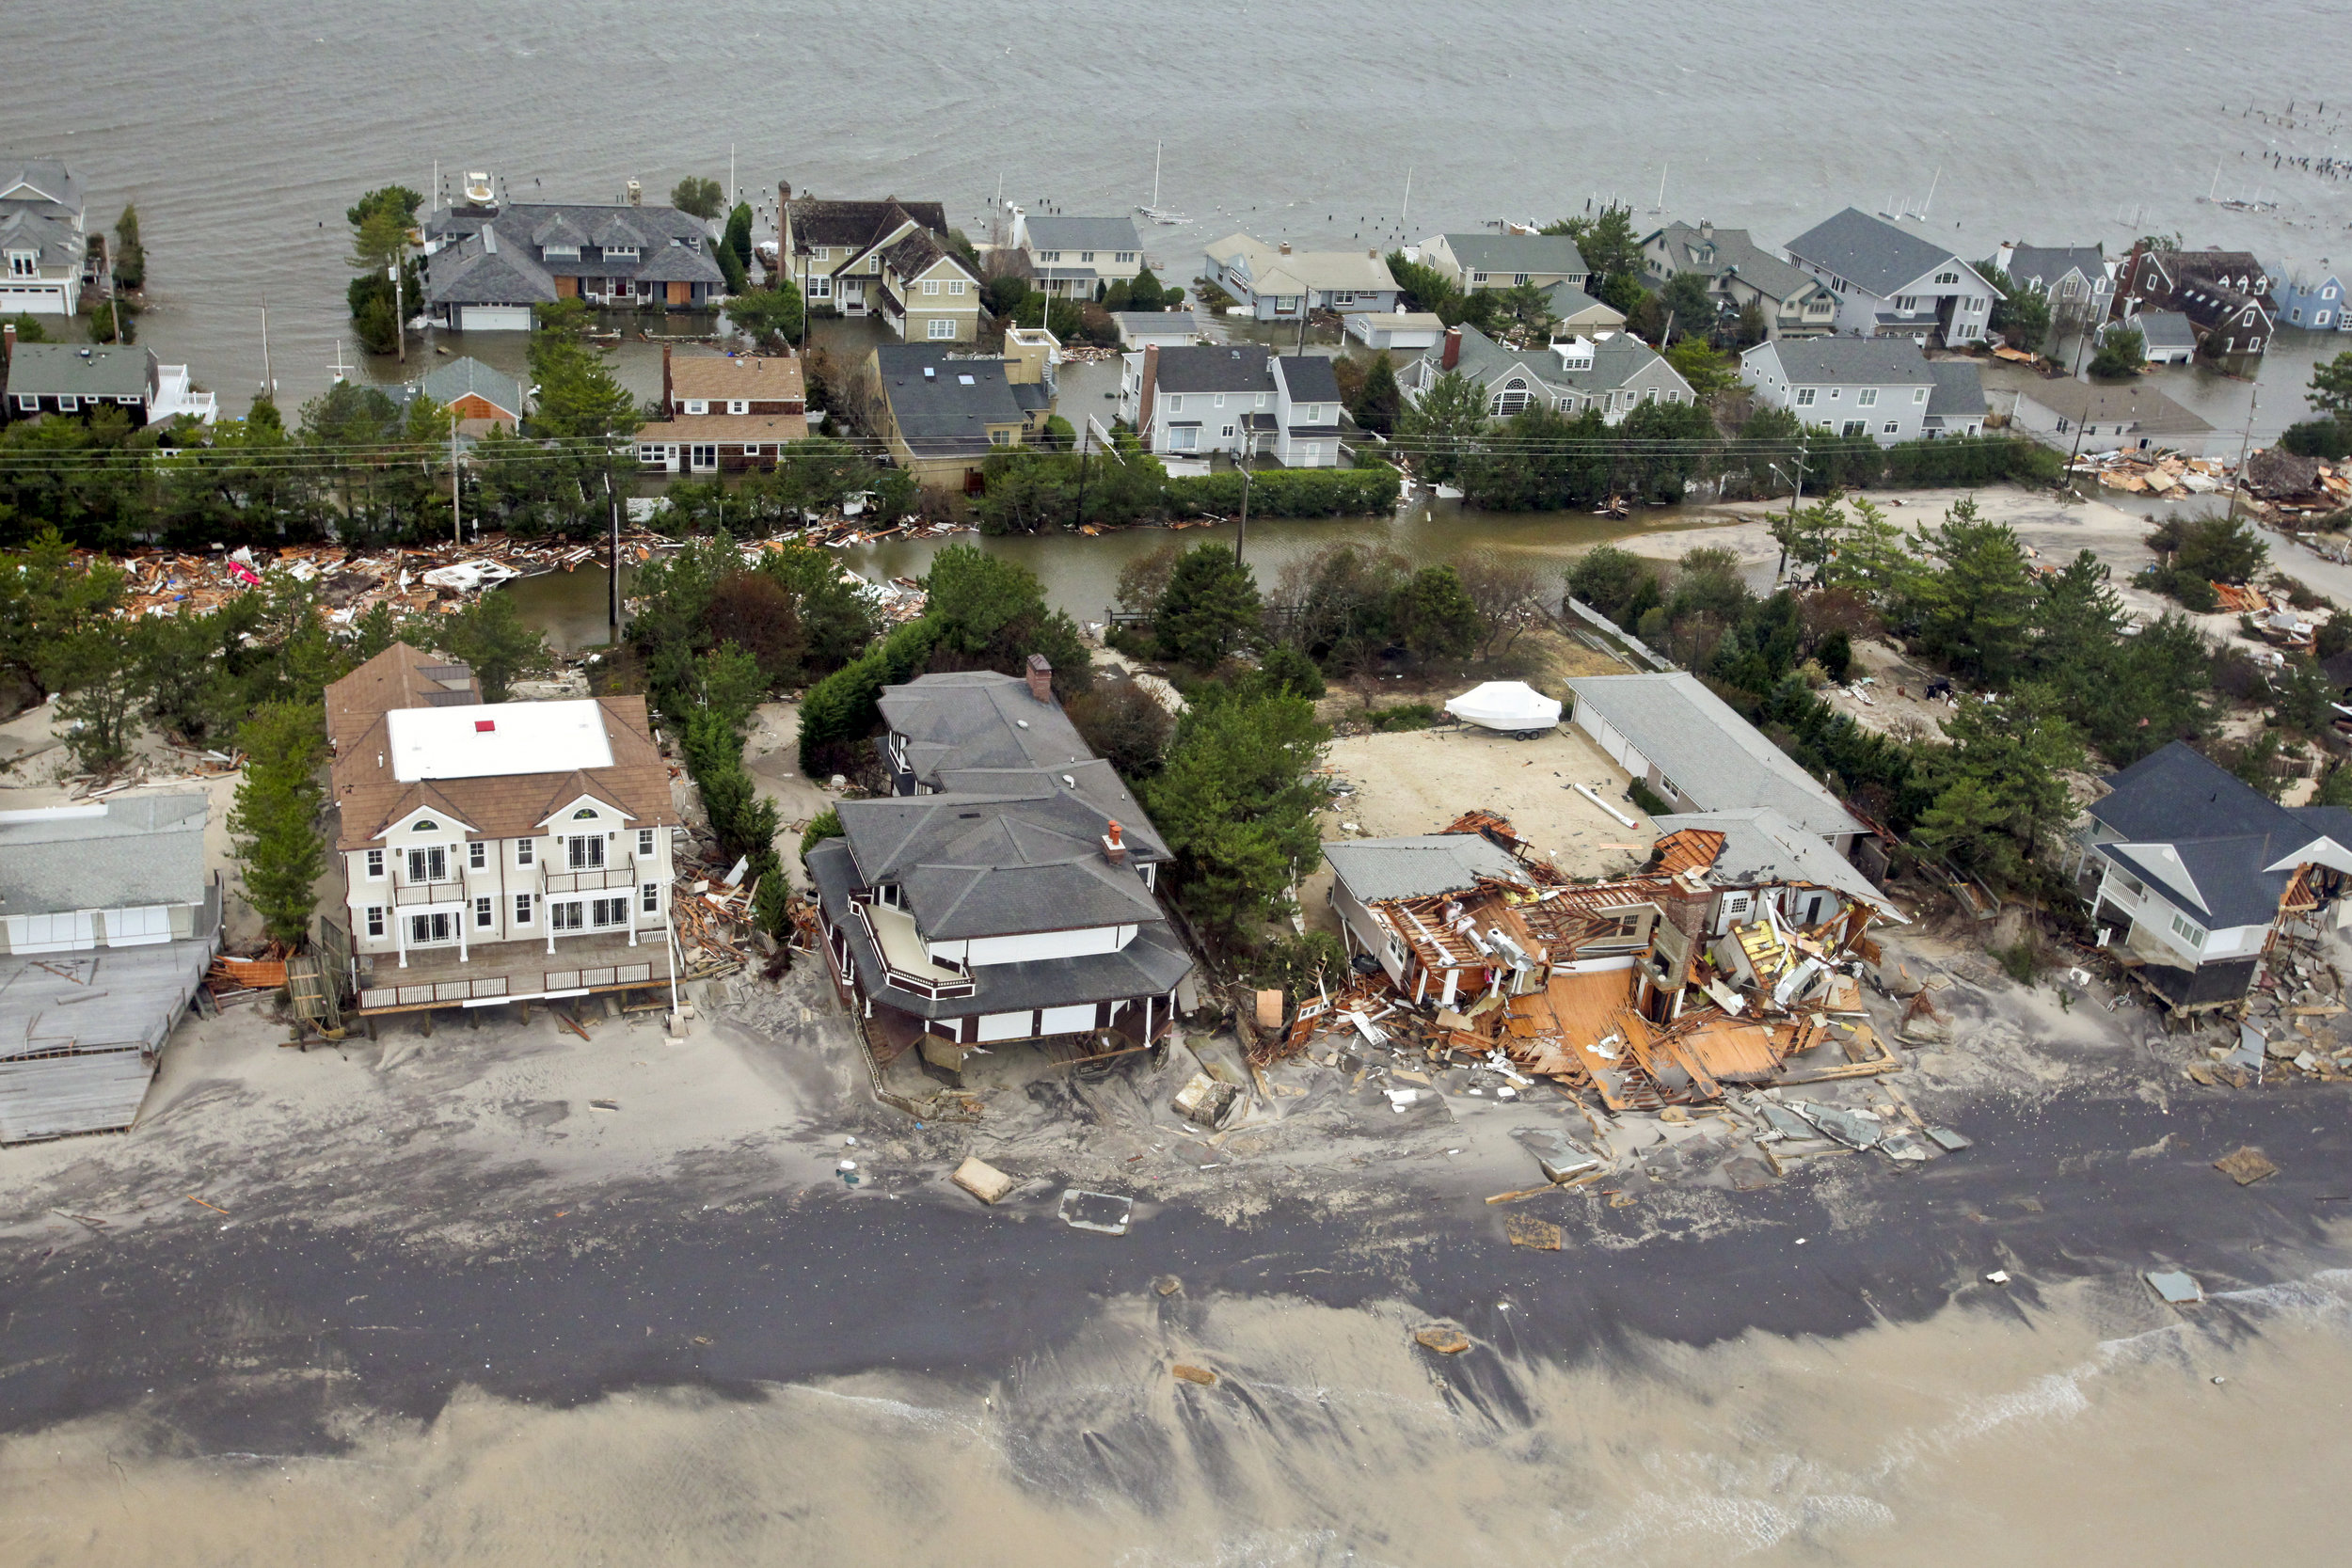 121030-F-AL508-081c_Aerial_views_during_an_Army_search_and_rescue_mission_show_damage_from_Hurricane_Sandy_to_the_New_Jersey_coast,_Oct._30,_2012.jpg